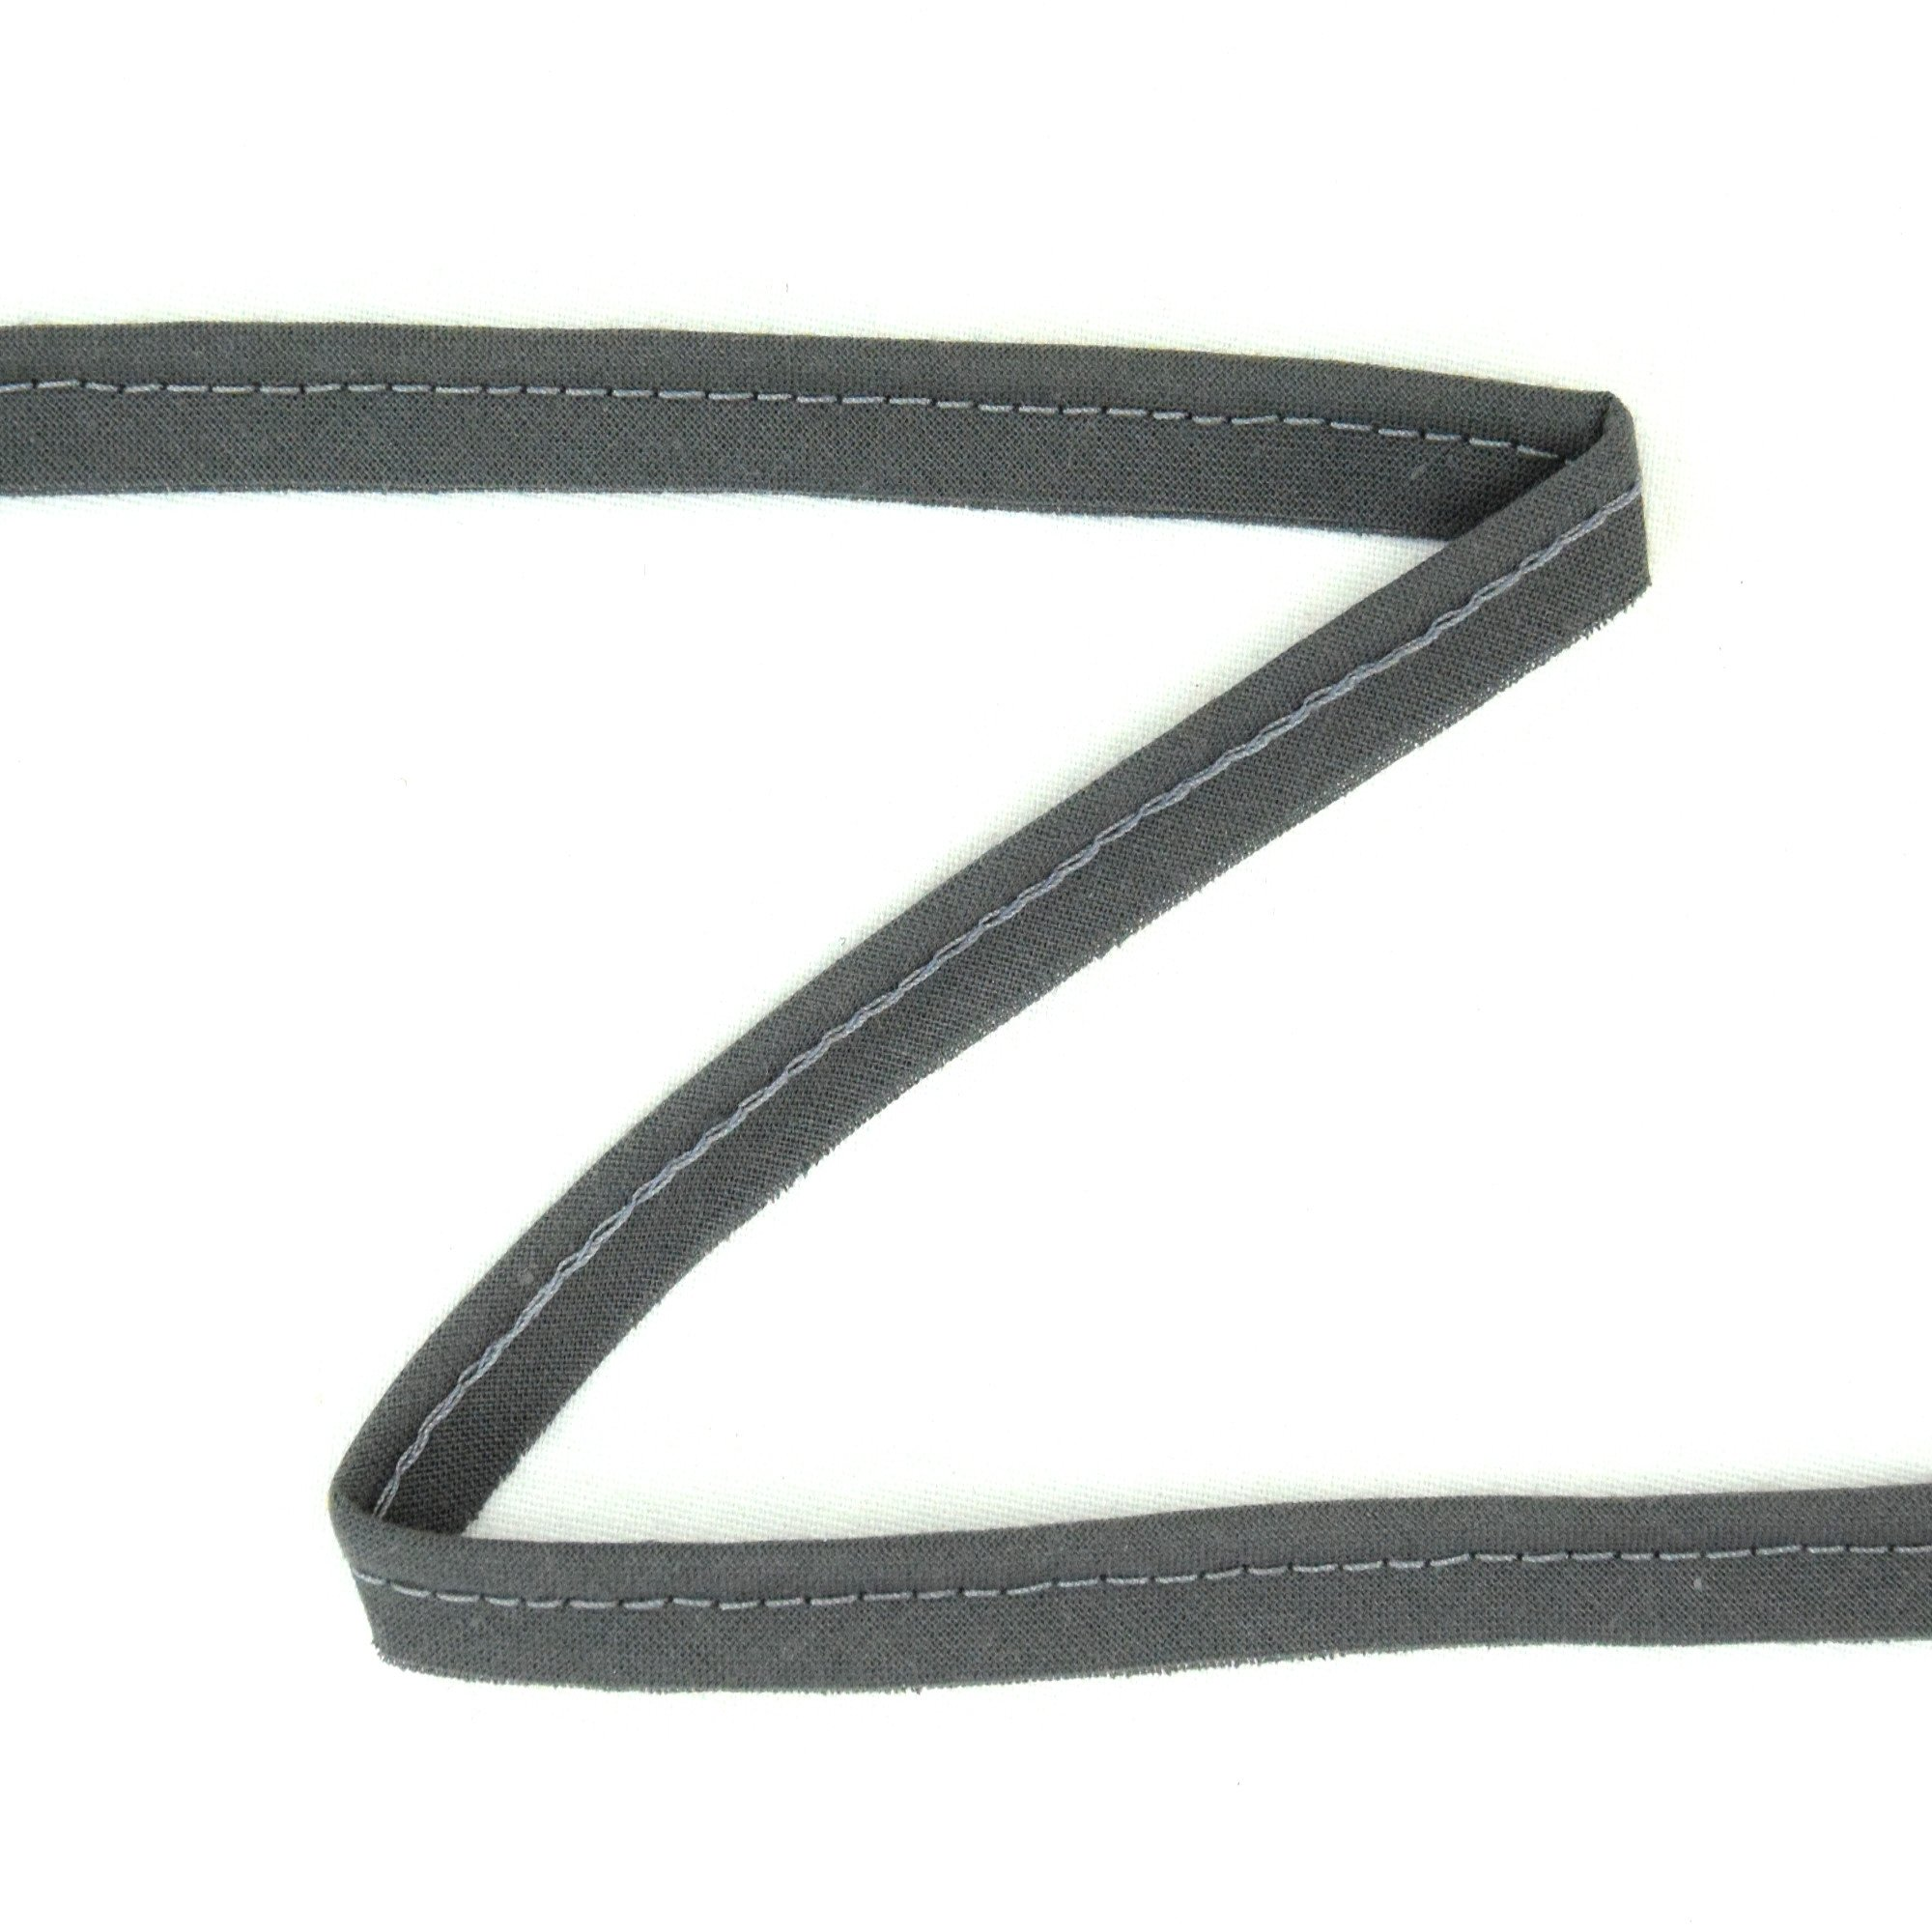 Piping ribbon, dark grey